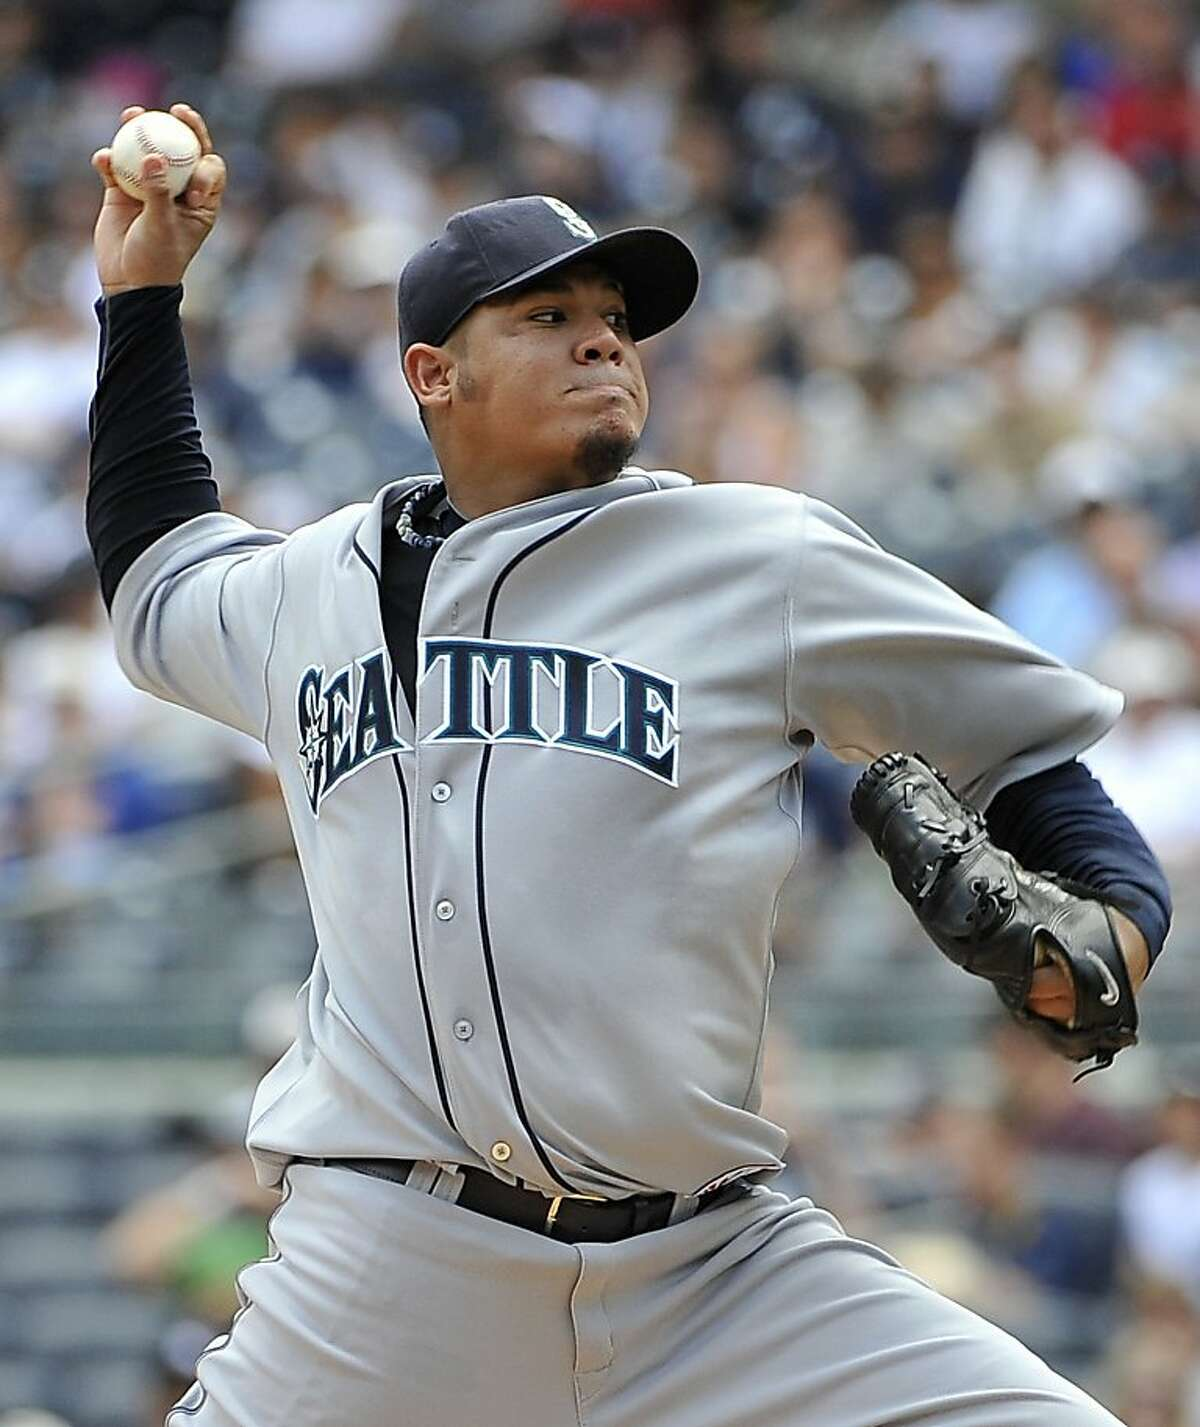 Seattle Mariners starting pitcher Felix Hernandez throws against the New York Yankees in the first inning of a baseball game Wednesday, July 27, 2011 at Yankee Stadium in New York. The Mariners won 9-2.